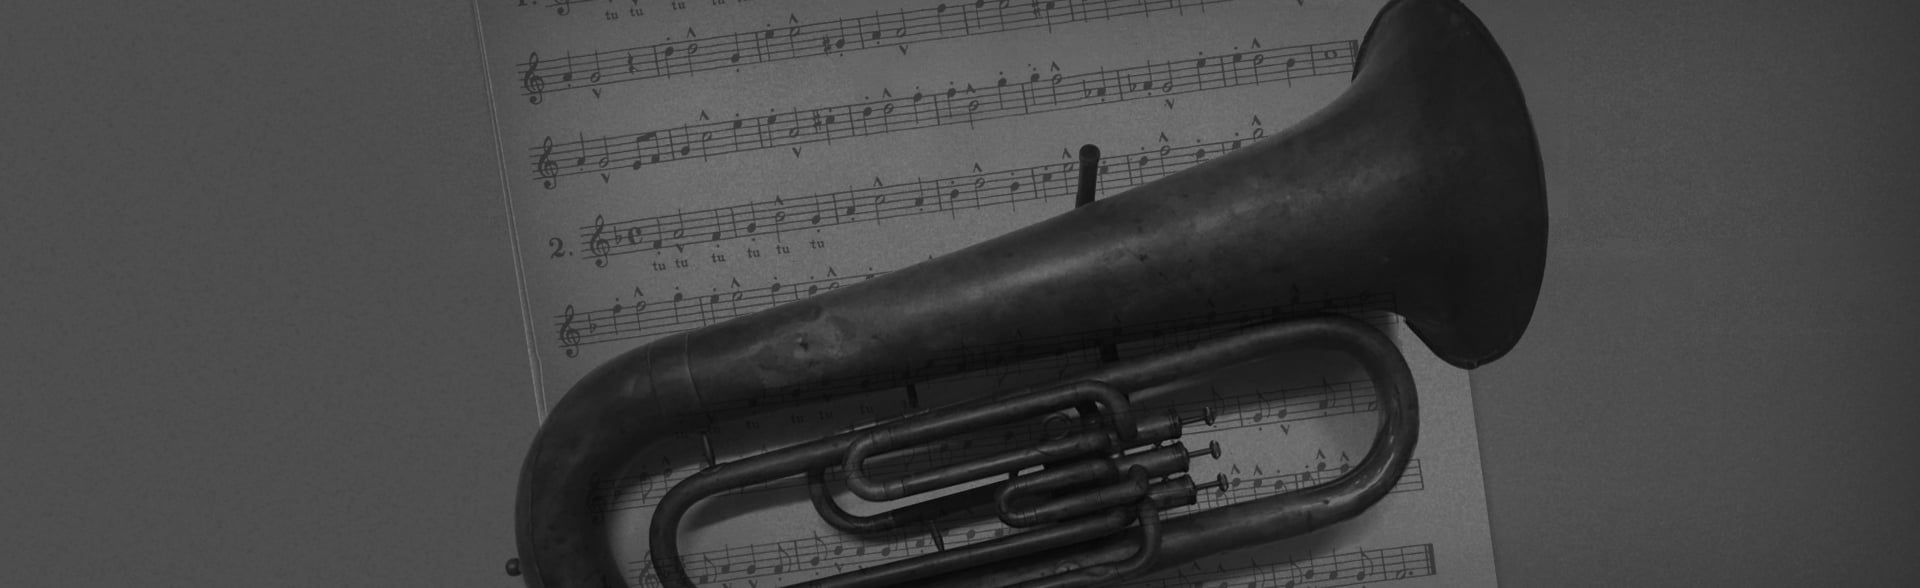 tuba_arban_LP_header